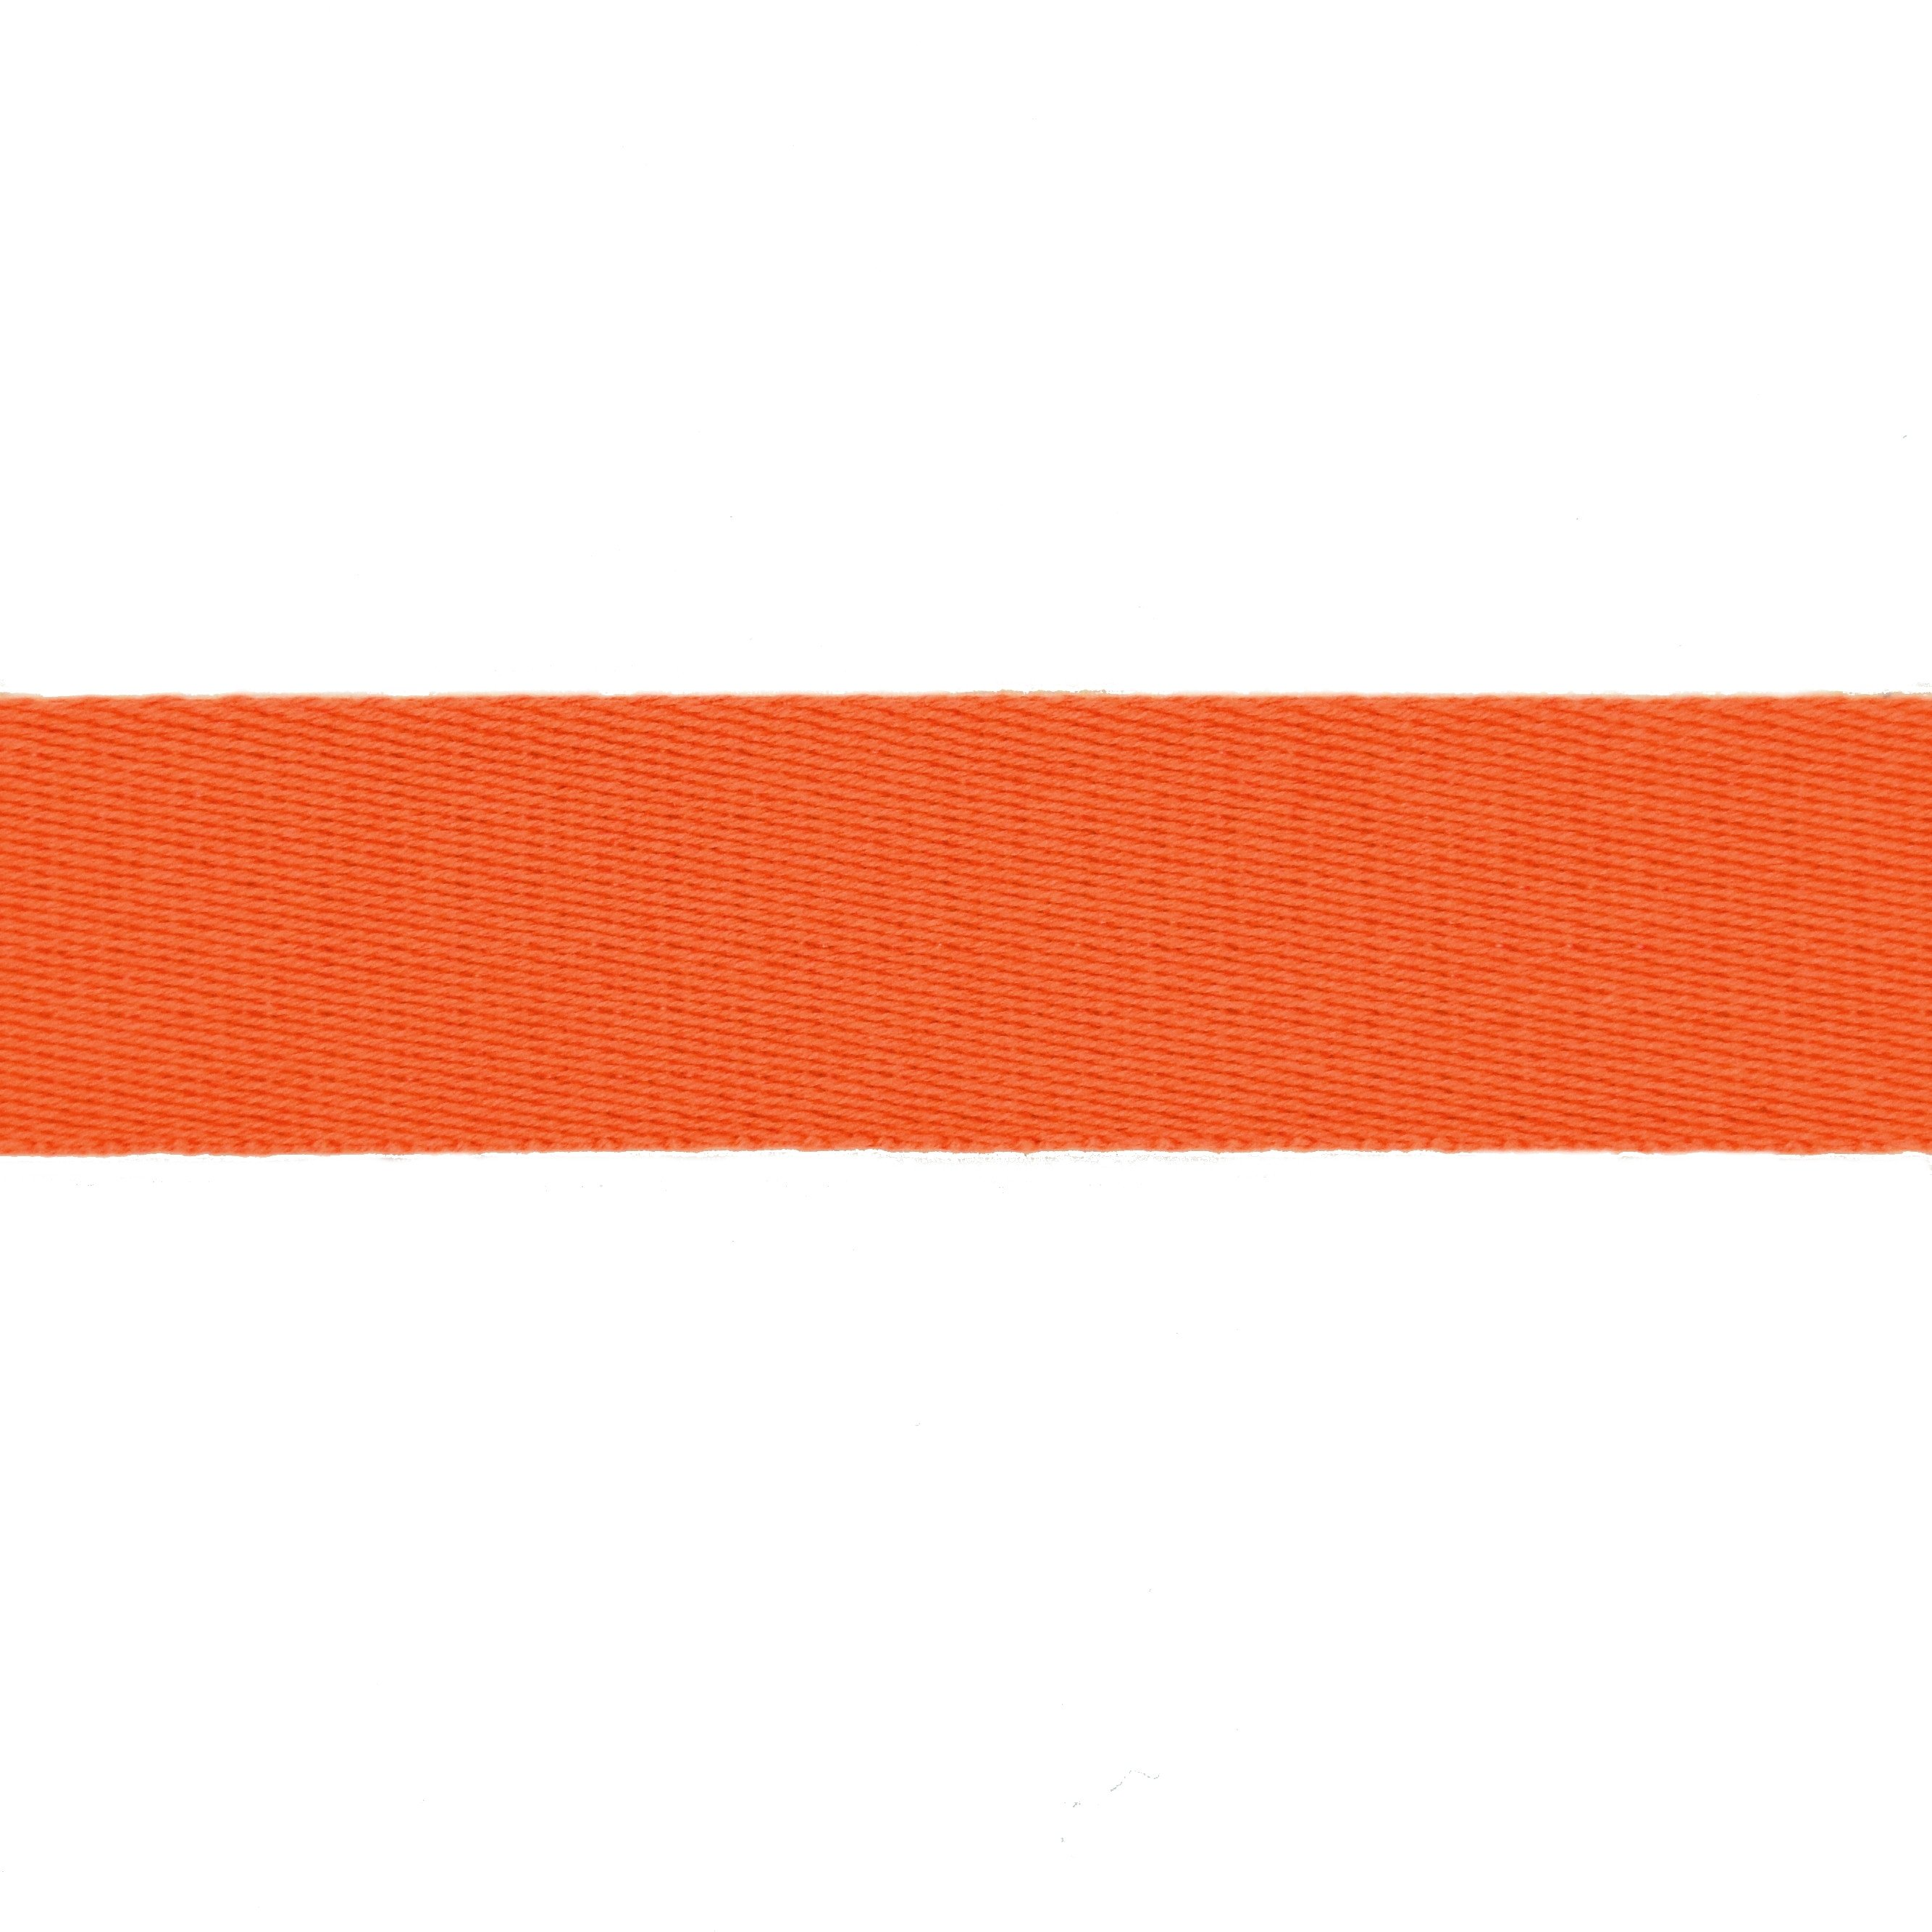 Baumwoll-Gurtband uni orange 38 mm